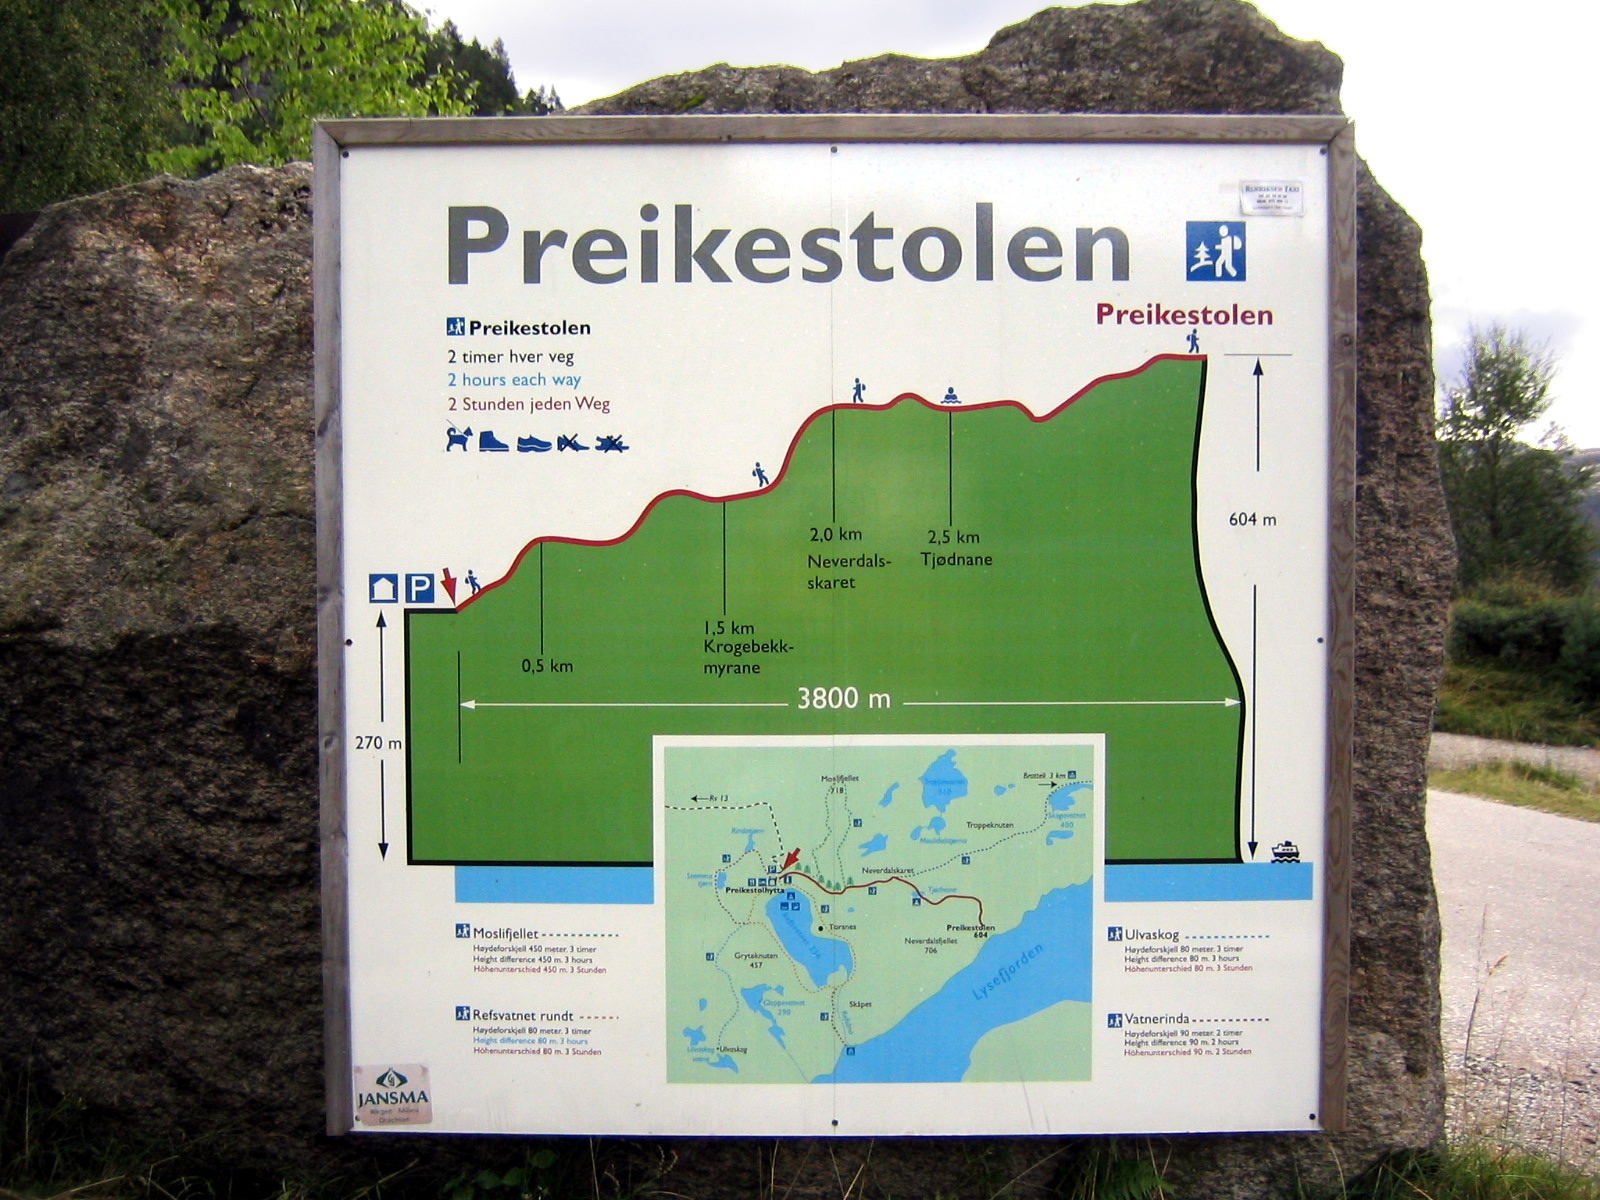 Preikestolen hiking map, Norway